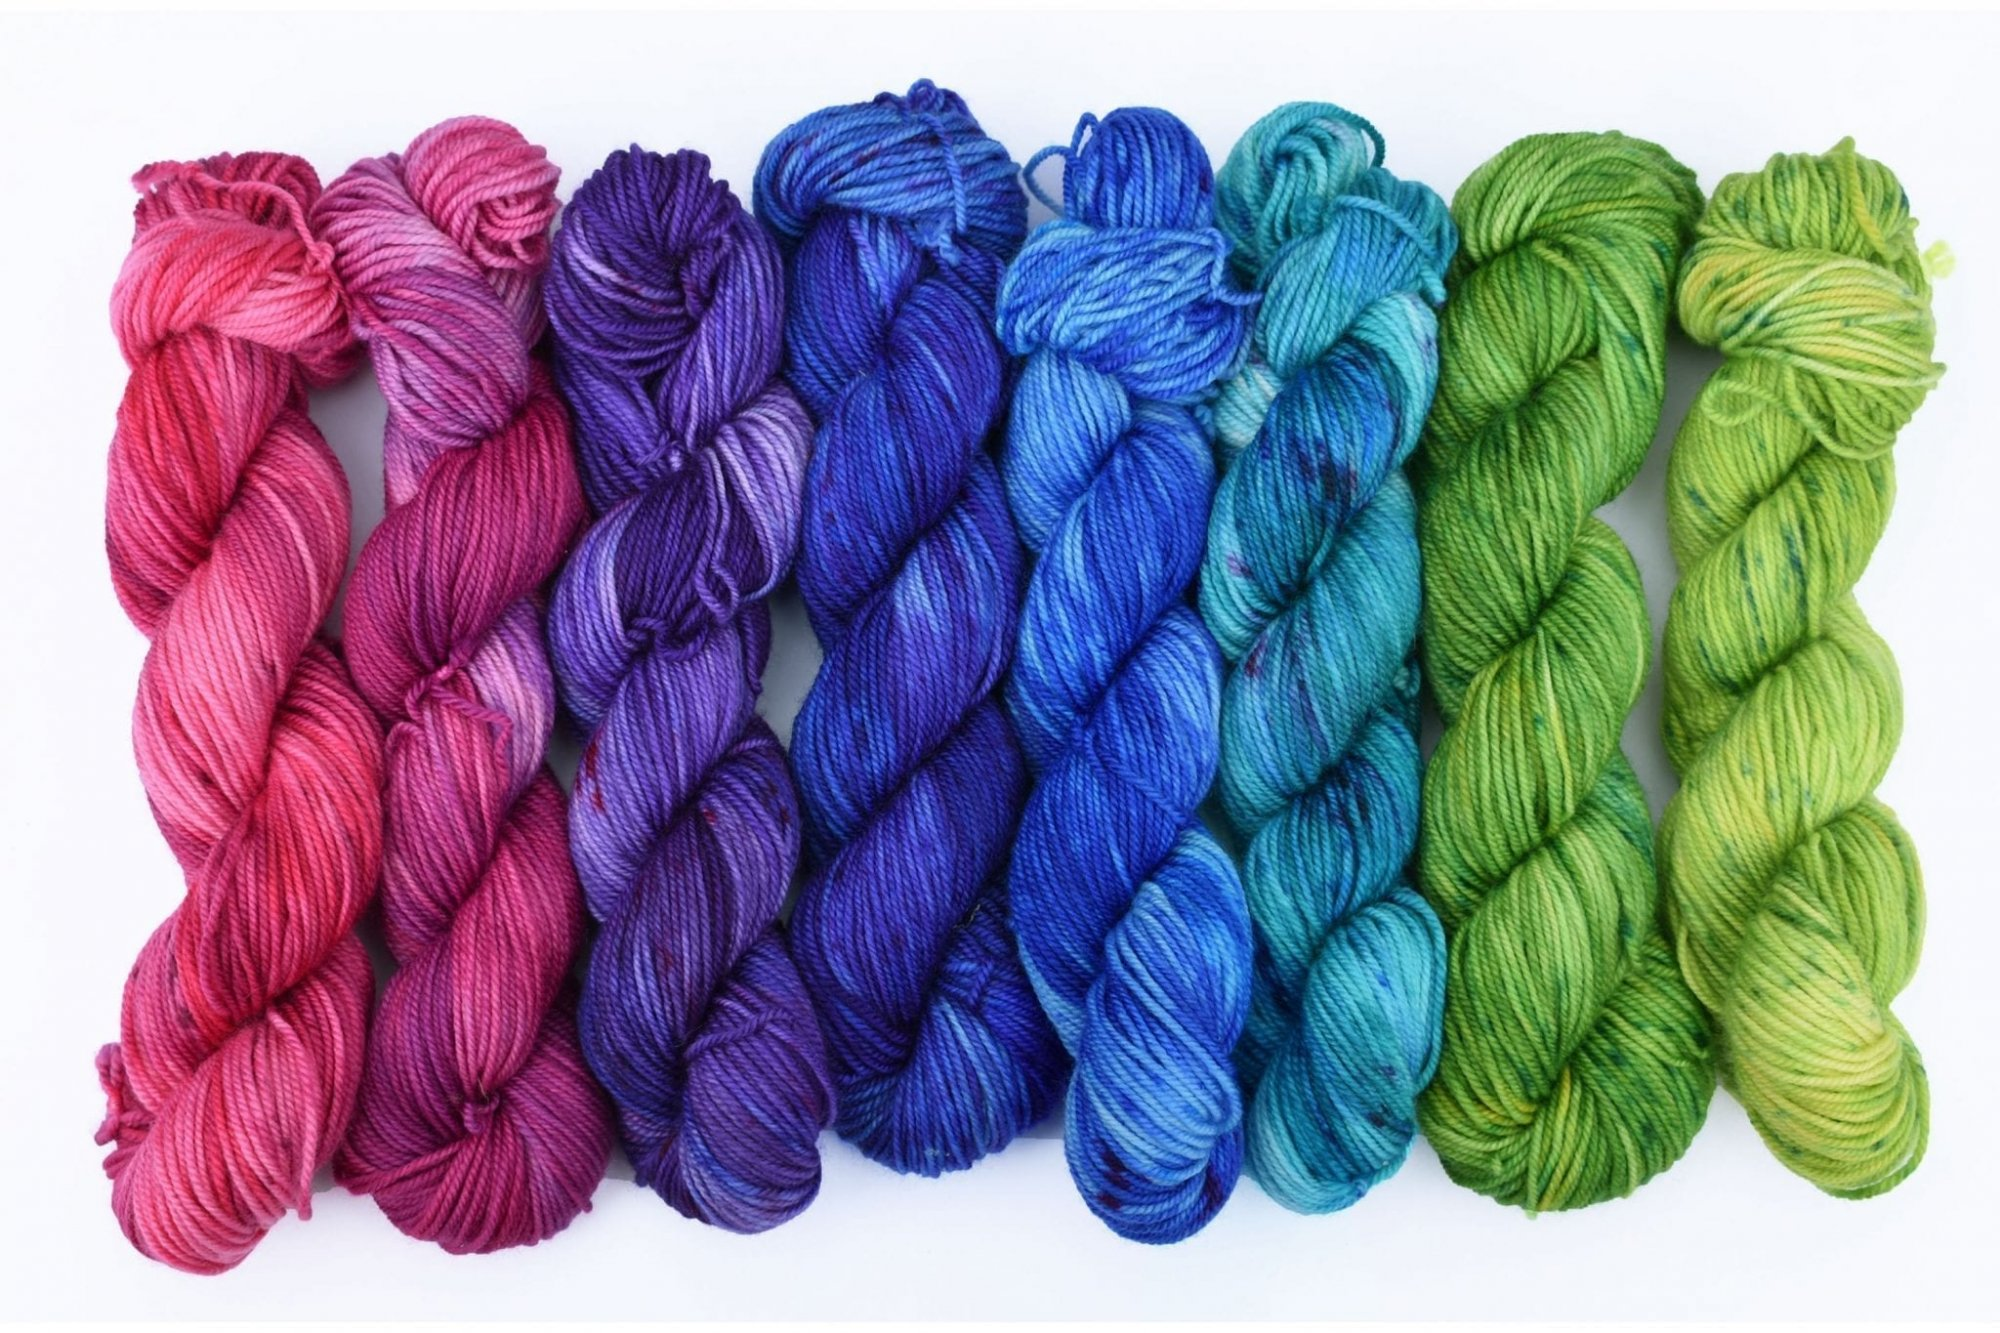 Wonderland Yarns - Mary Ann Mini Skein 8 Packs #85 One Way & Another